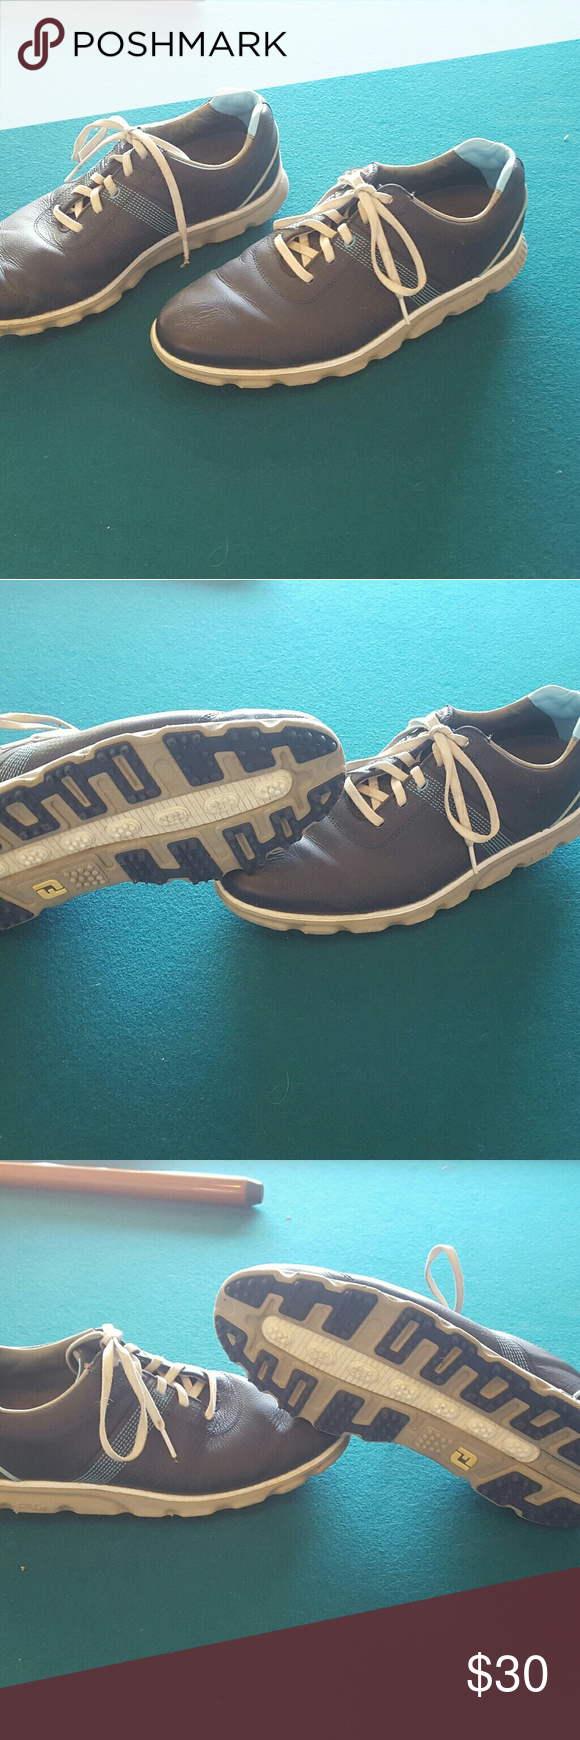 Footjoy dry joy casuals golf shoes size 10 Footjoys are the number one shoes in the game of golf these ones are awesome waterproof leather super comfortable spikeless with tons of traction only worn a few times retails for $159.99 Shoes Athletic Shoes #shoegame